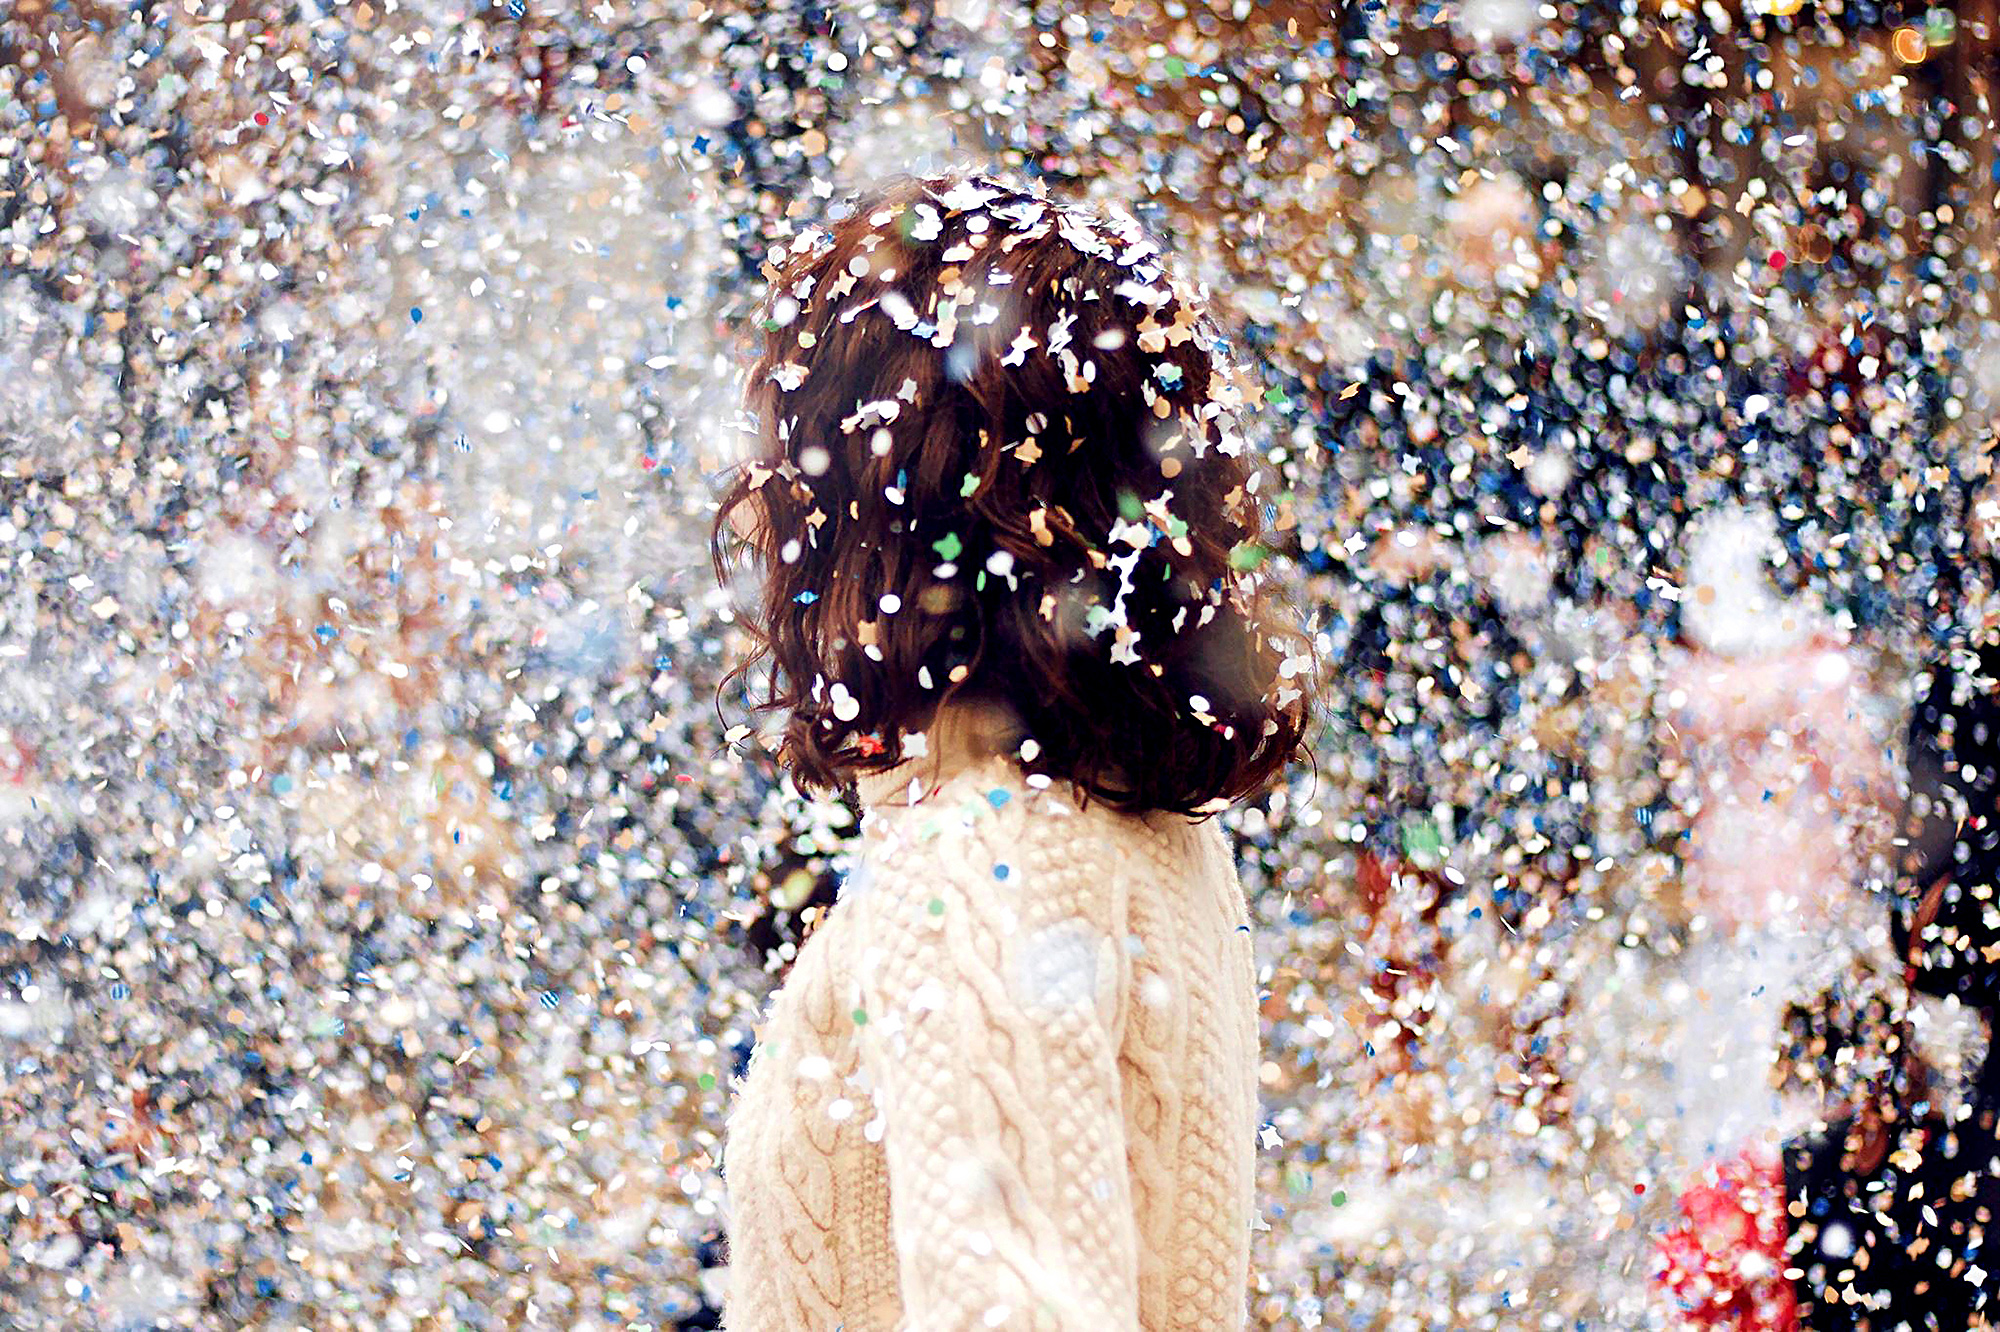 a woman with long brown hair stands amidst a flurry of multi-colored confetti